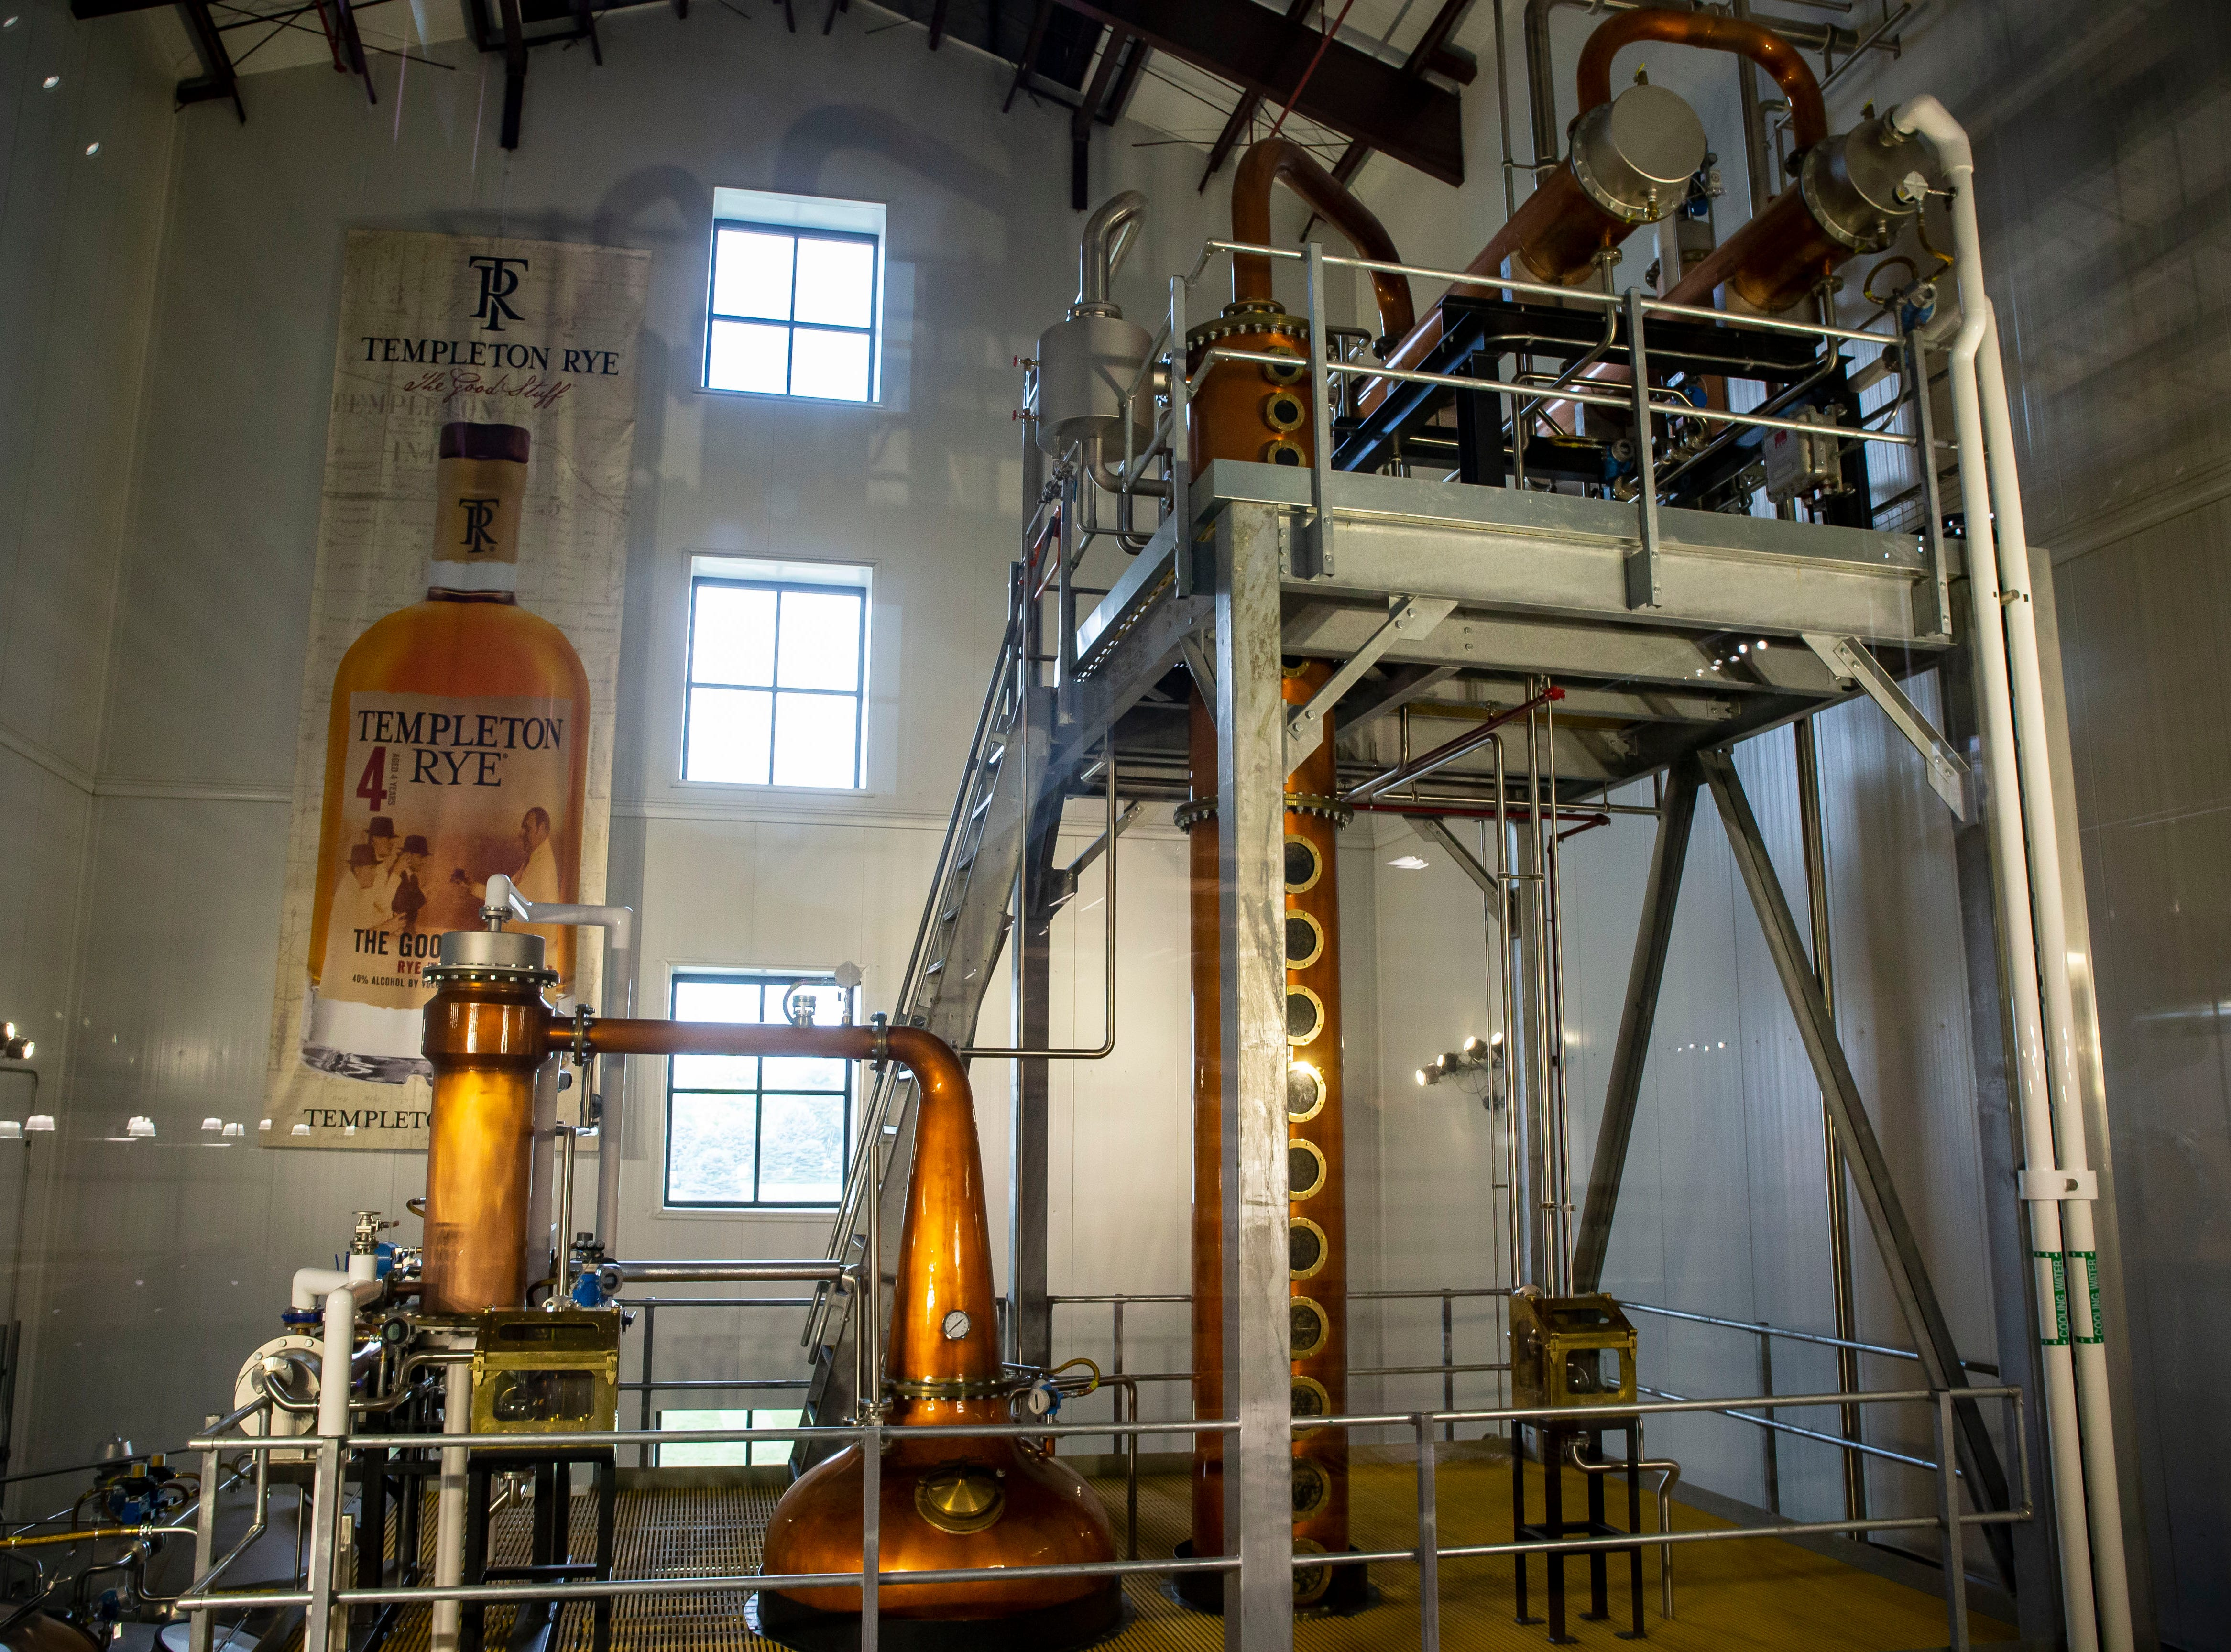 The distilling room at Templeton Rye in their new $35 million distillery in Templeton, Iowa, shown here Monday, Aug. 6, 2018.